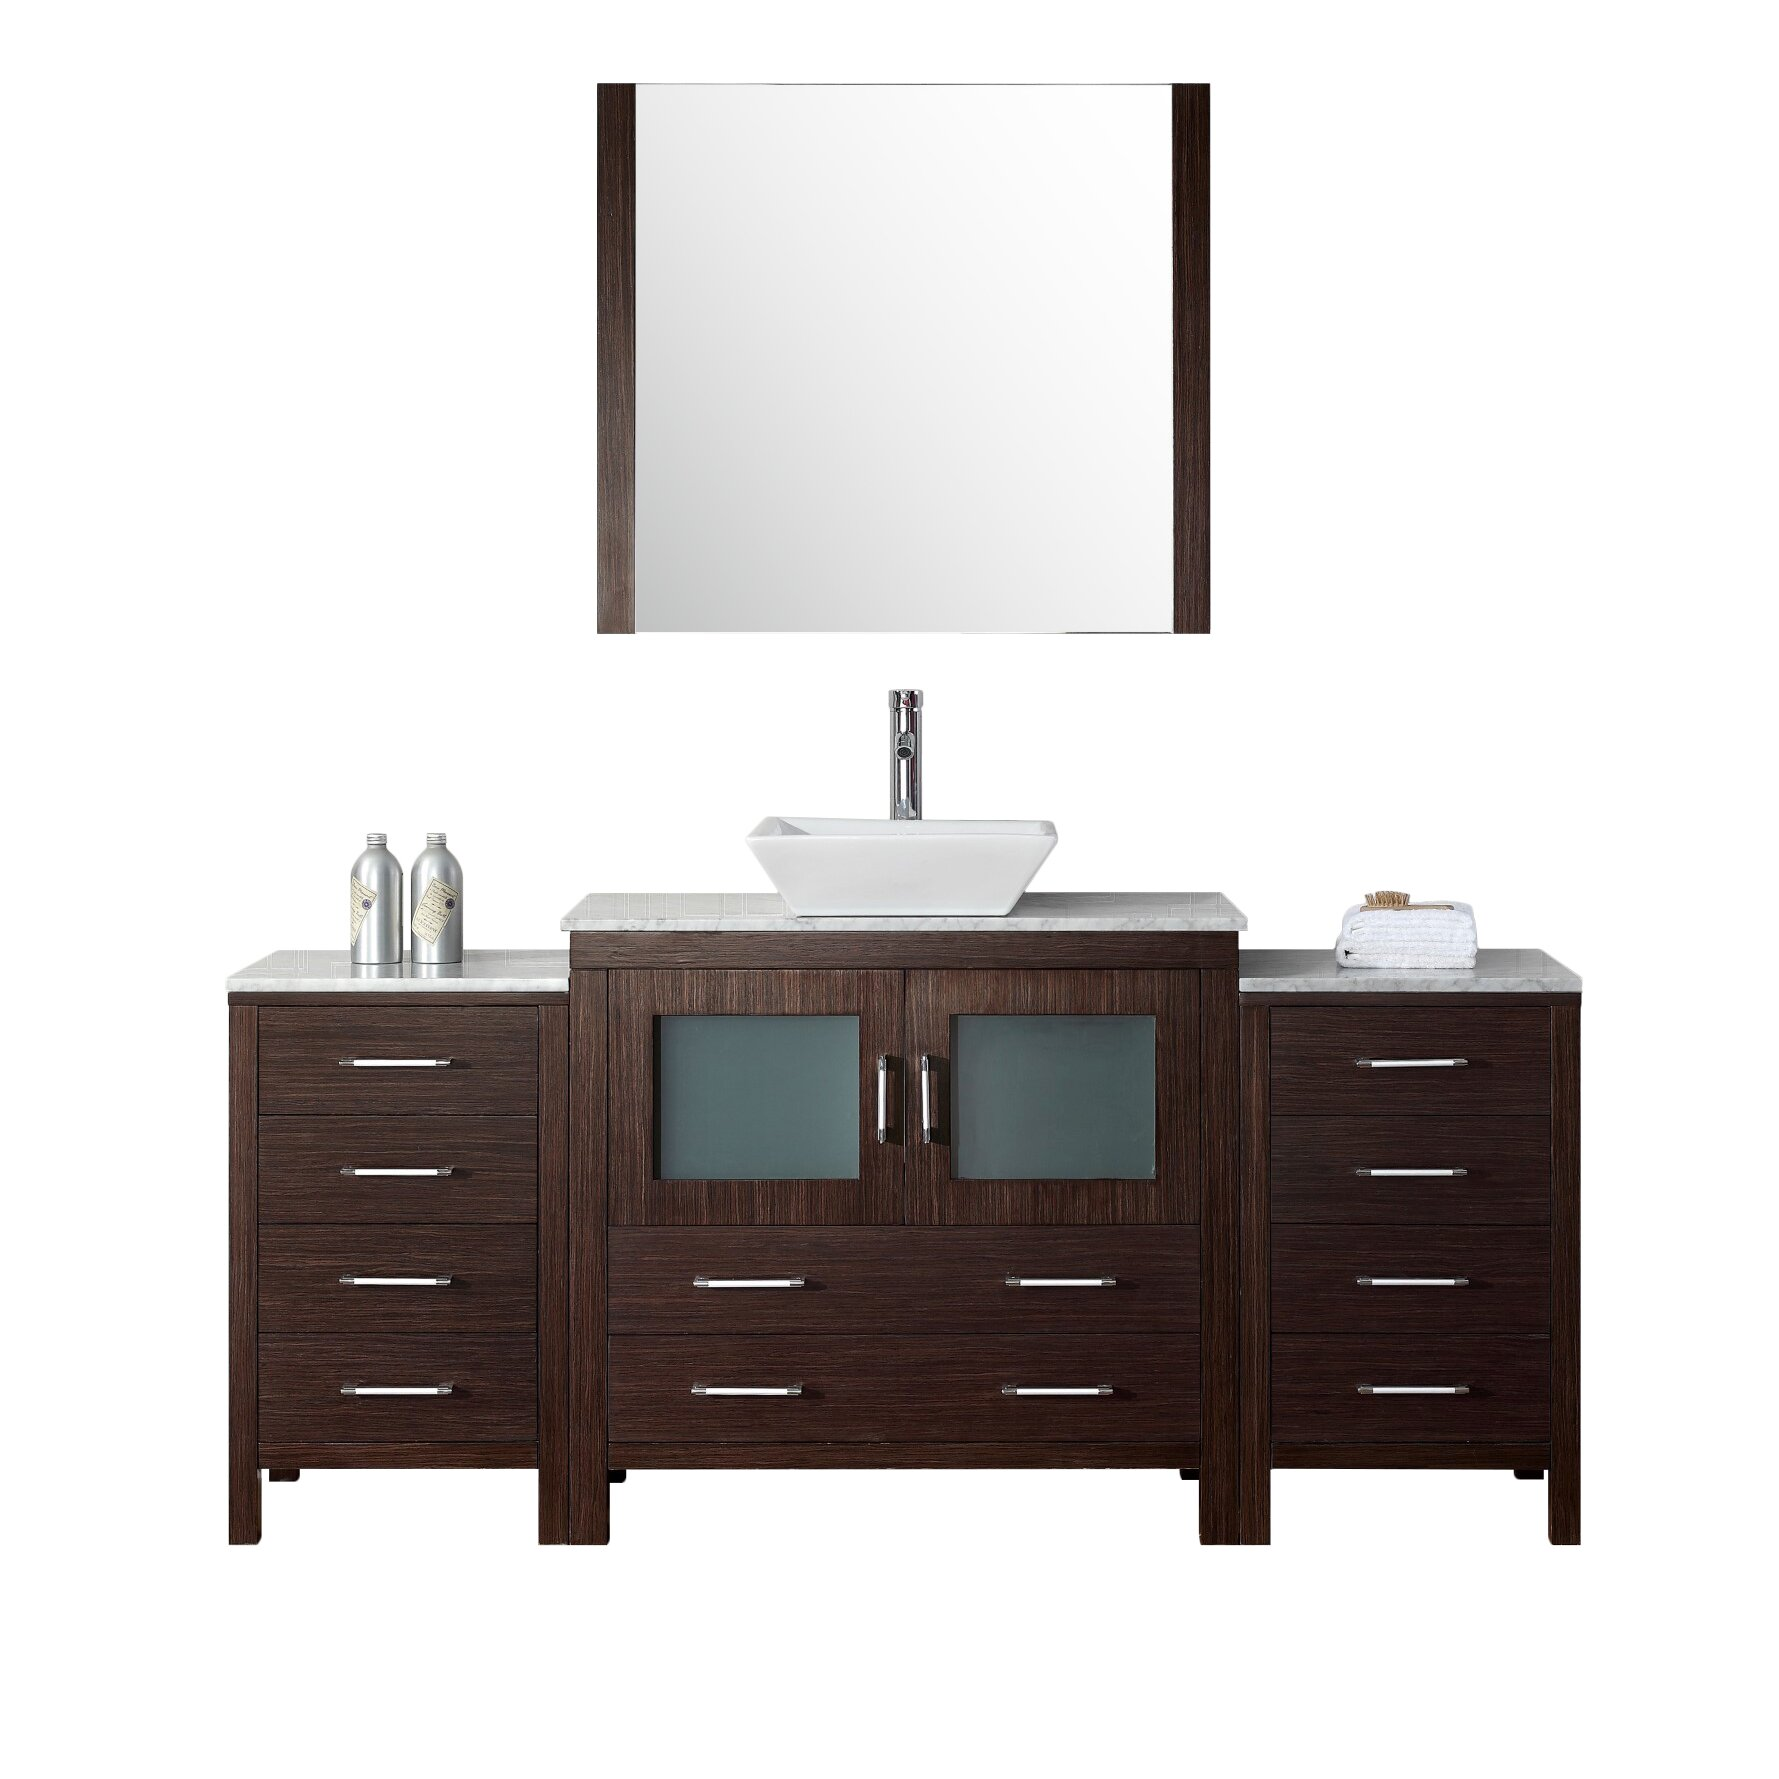 Virtu dior 66 single bathroom vanity set with mirror for Single bathroom vanity